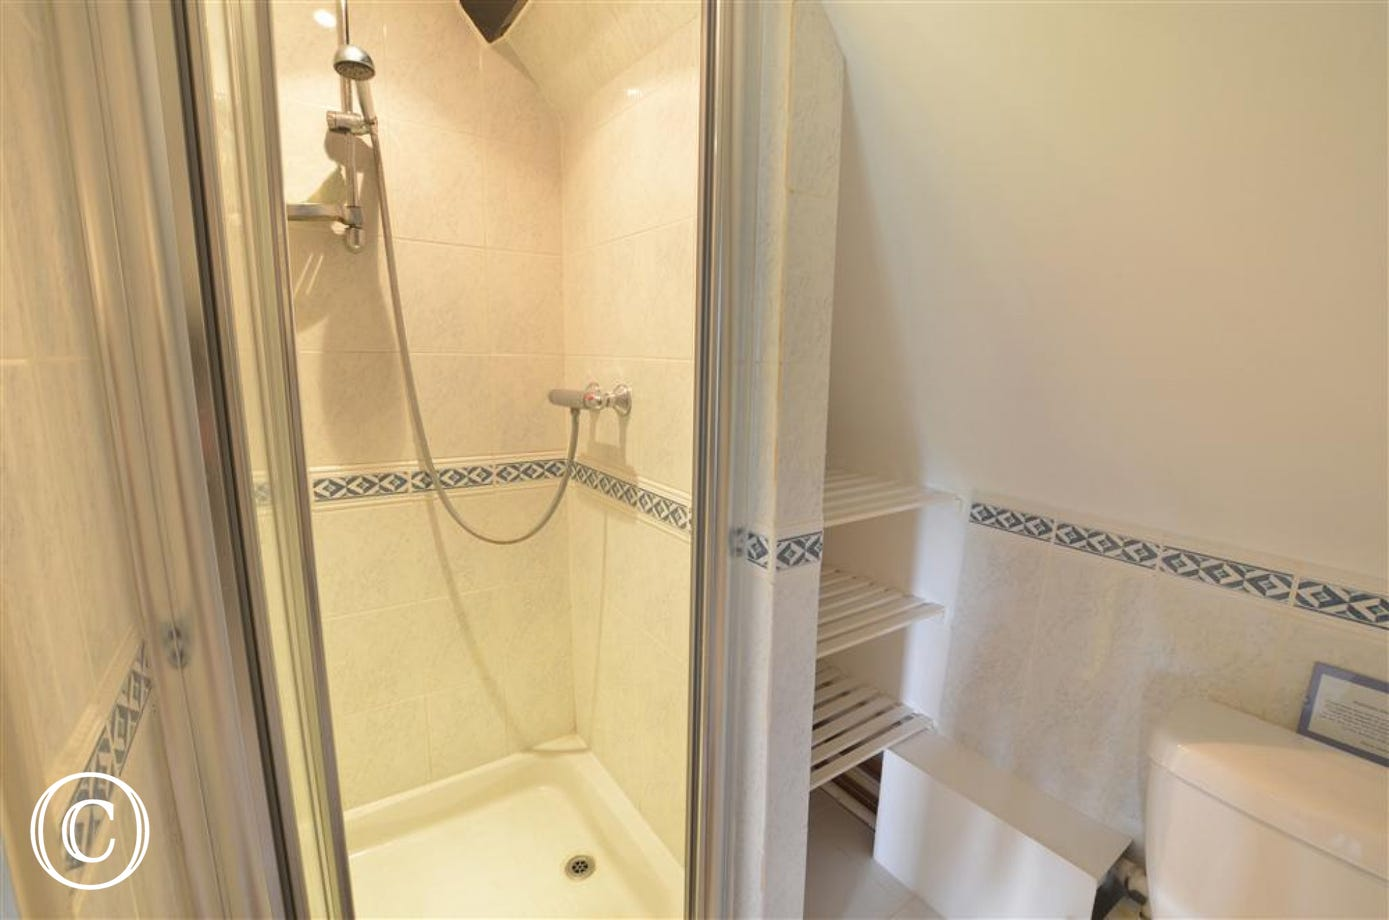 View of en-suite bathroom with shower cubicle.